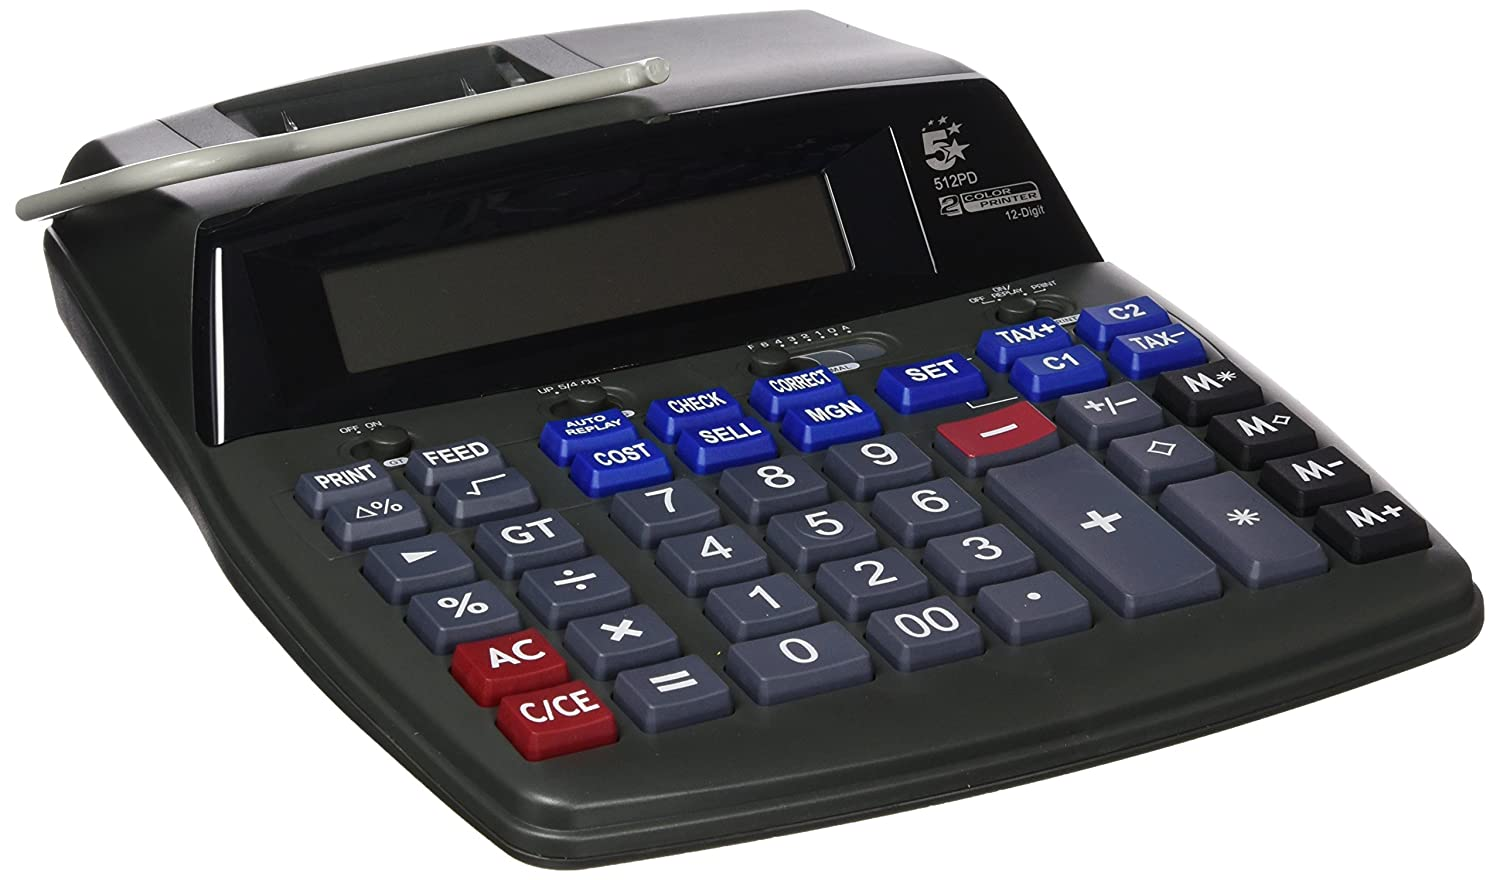 Amazon.com : 5 Star 960158 Desktop 512PD Calculator 12 ...